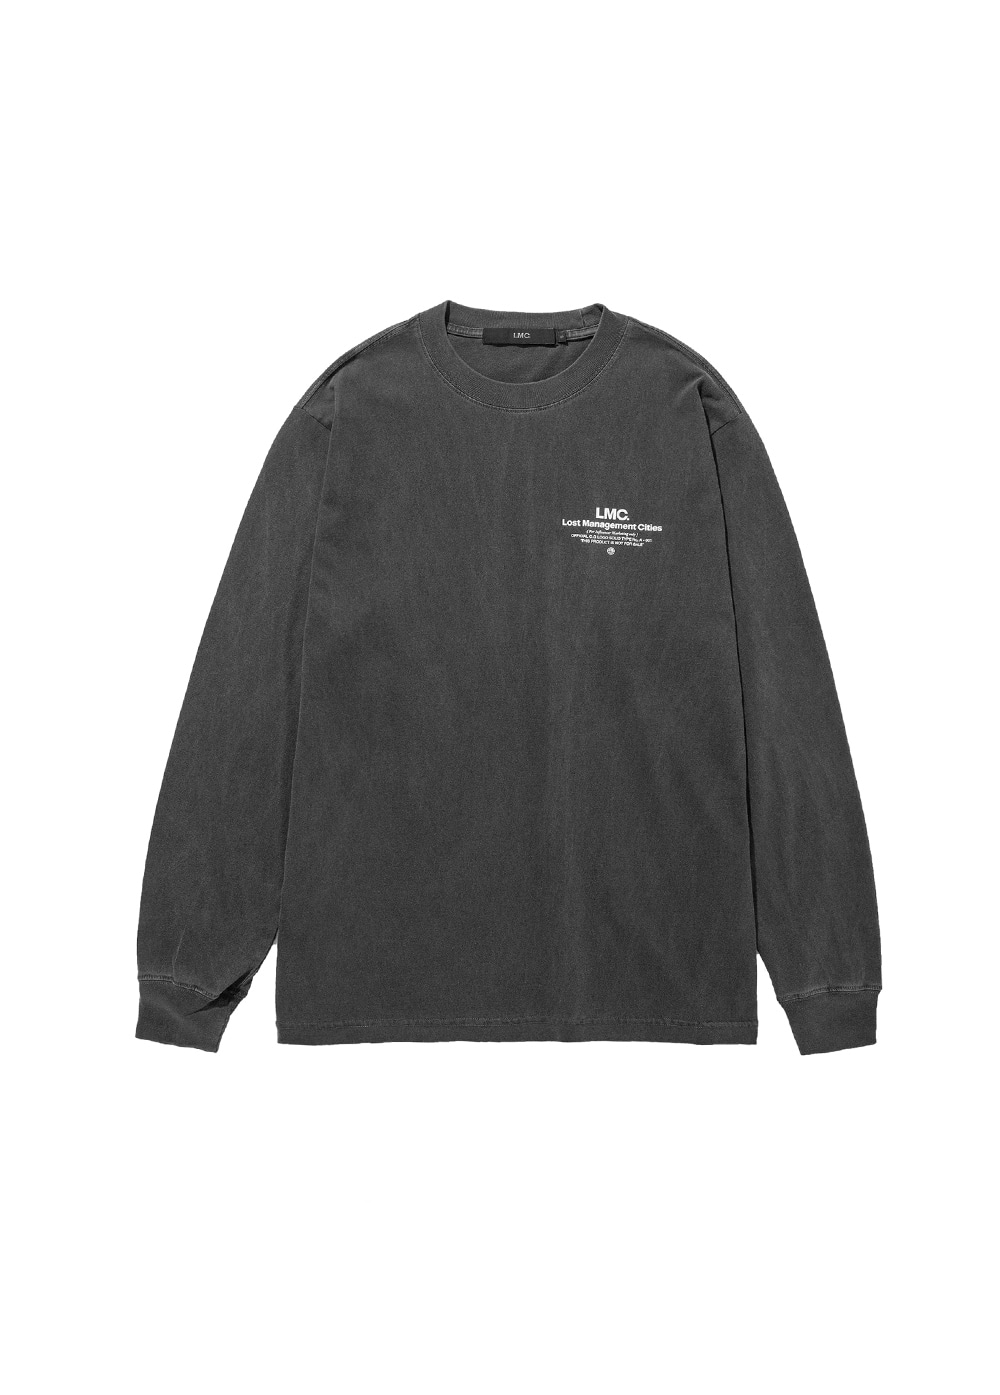 LMC INFLUENCER LONG SLV TEE dark gray